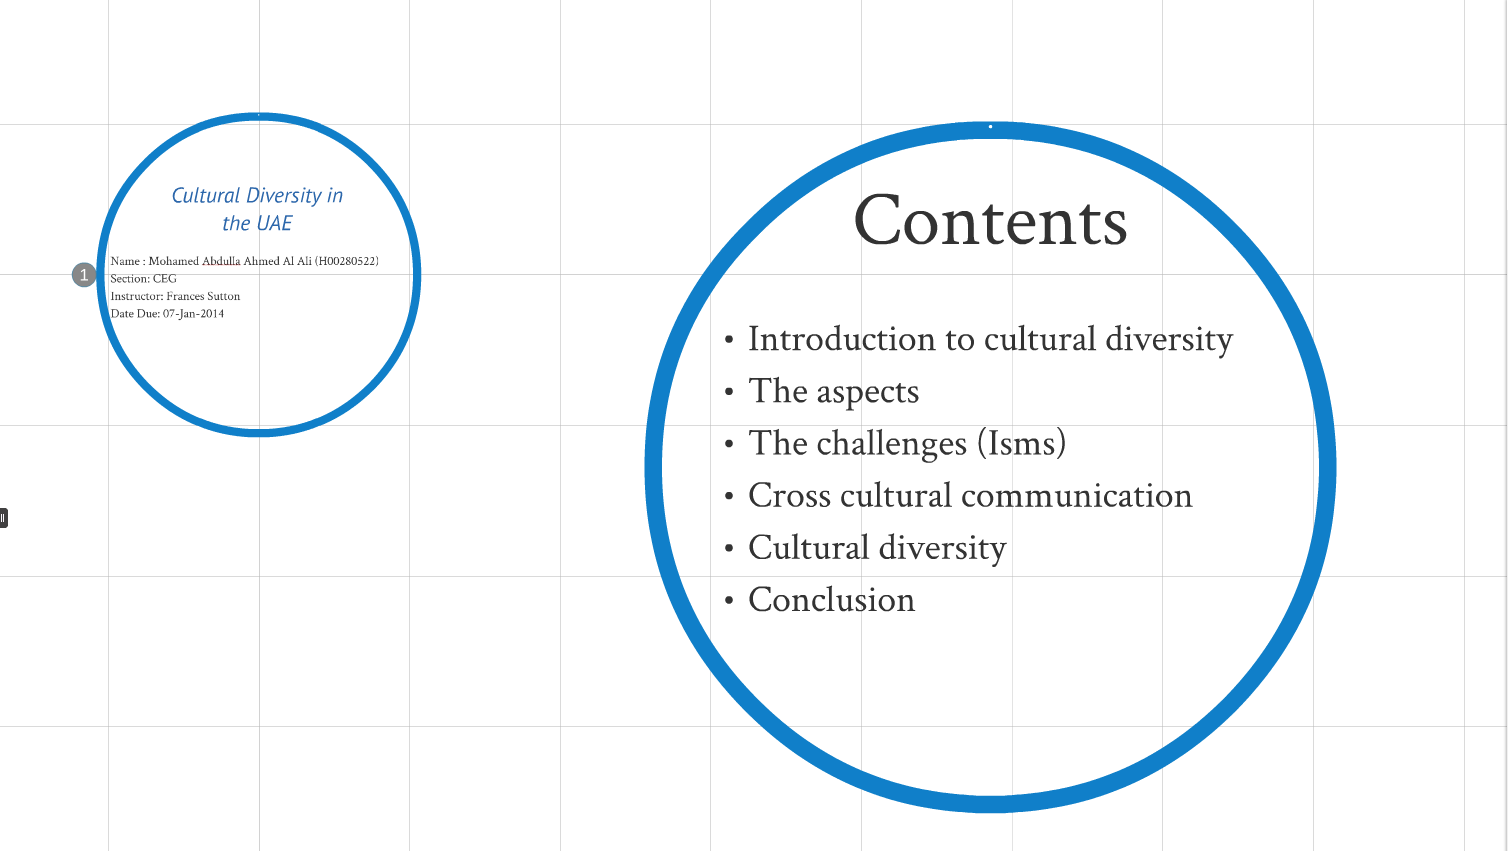 008 Firsttwoslides Cultural Diversity Essay Outstanding Topics Conclusion Introduction Full